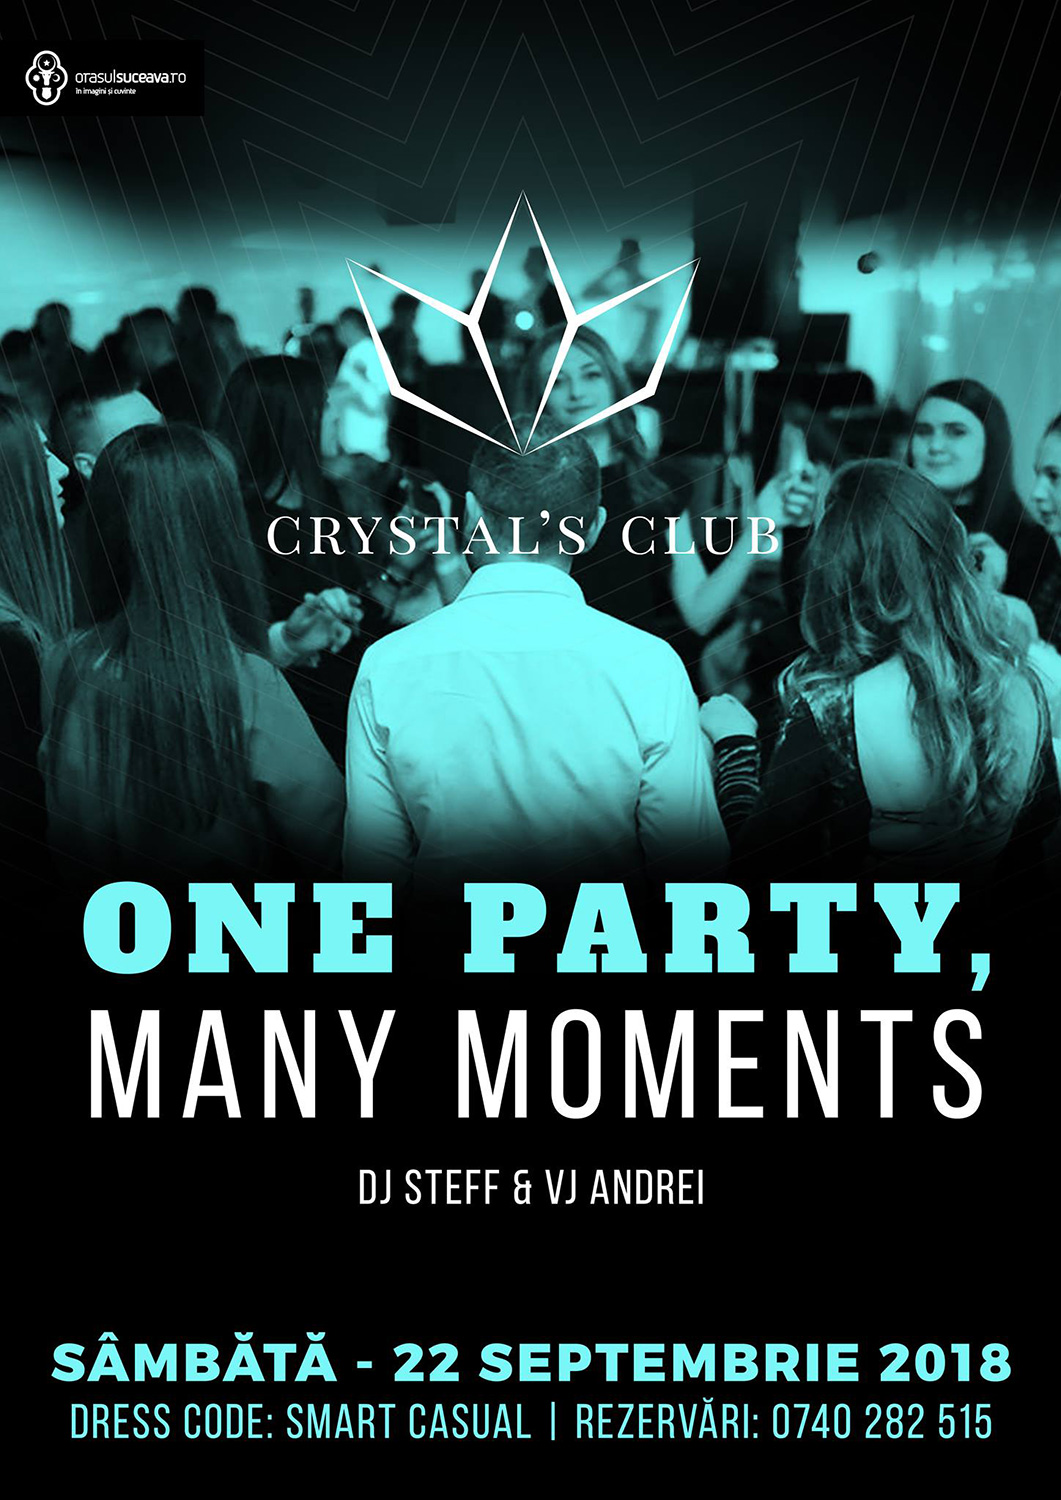 One party, many moments